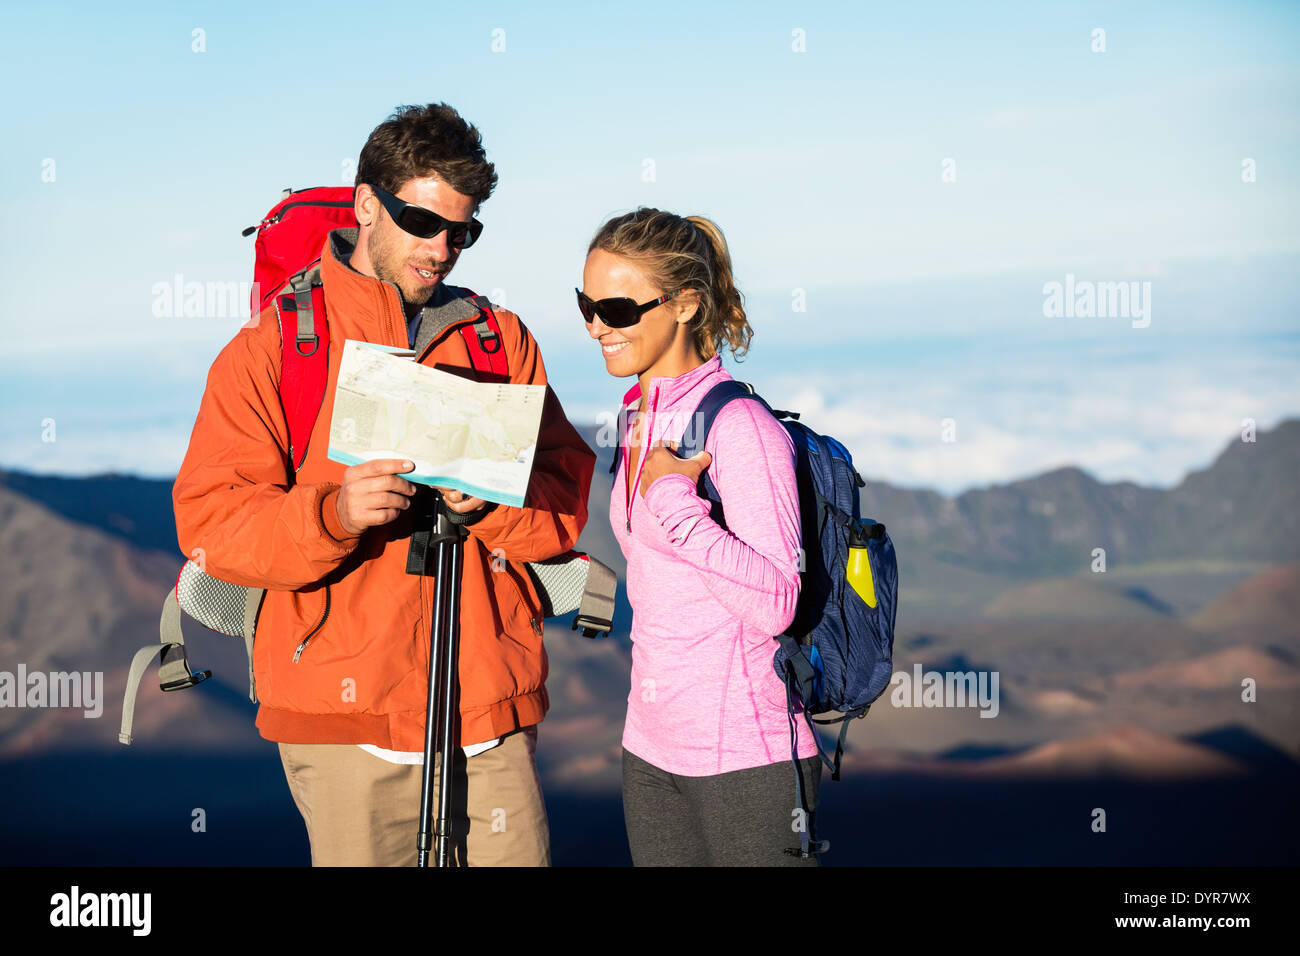 Hikers looking at trail map. Hiking in the mountains. - Stock Image